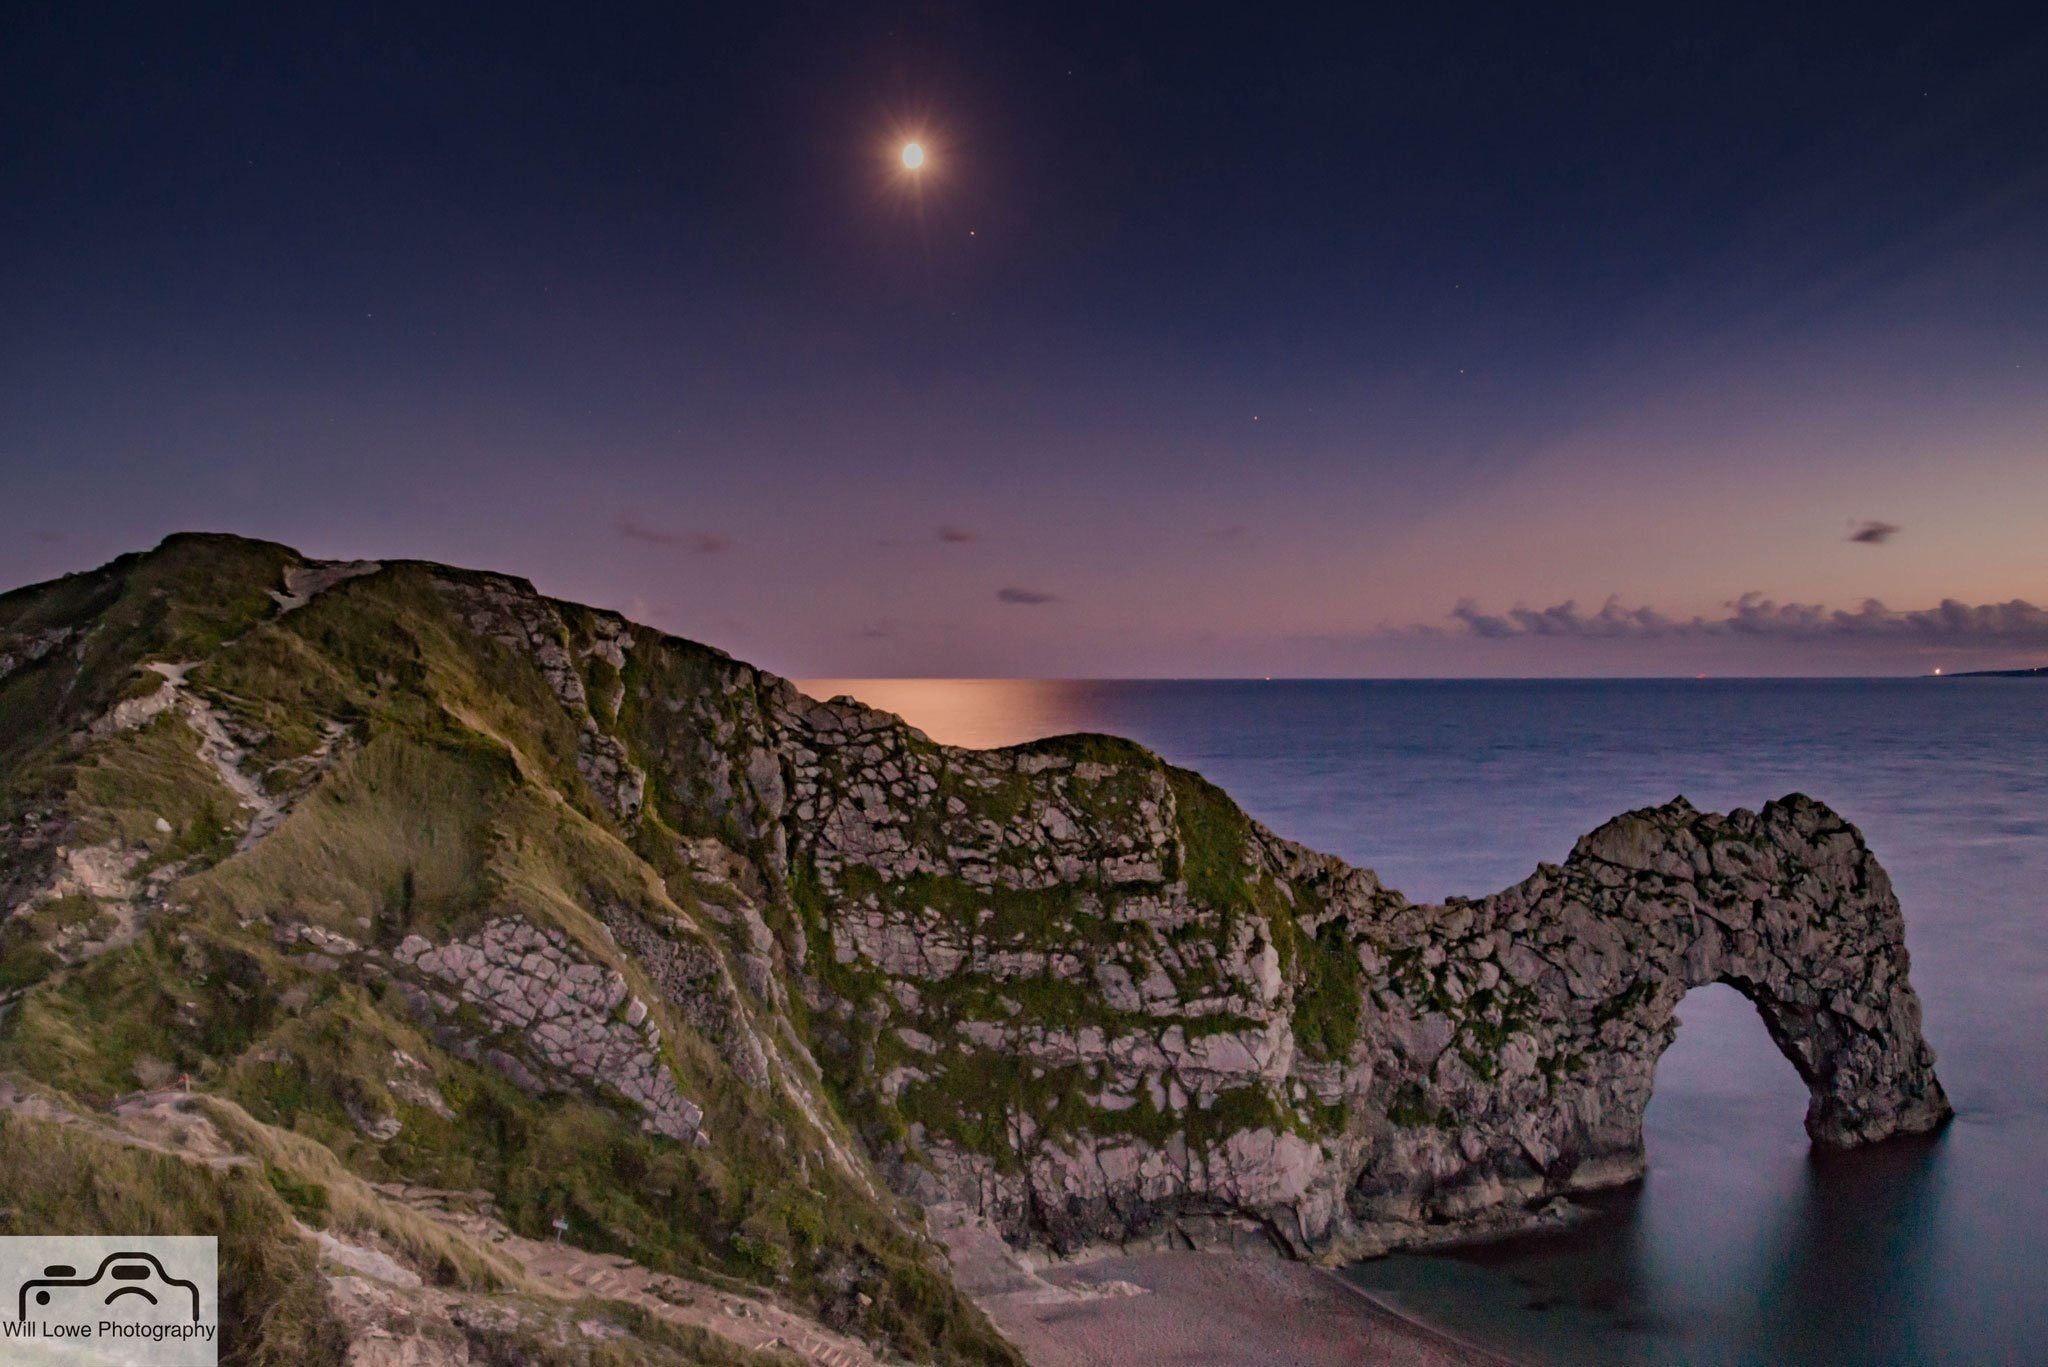 Moonrise over Durdle Door by Will Lowe Photography